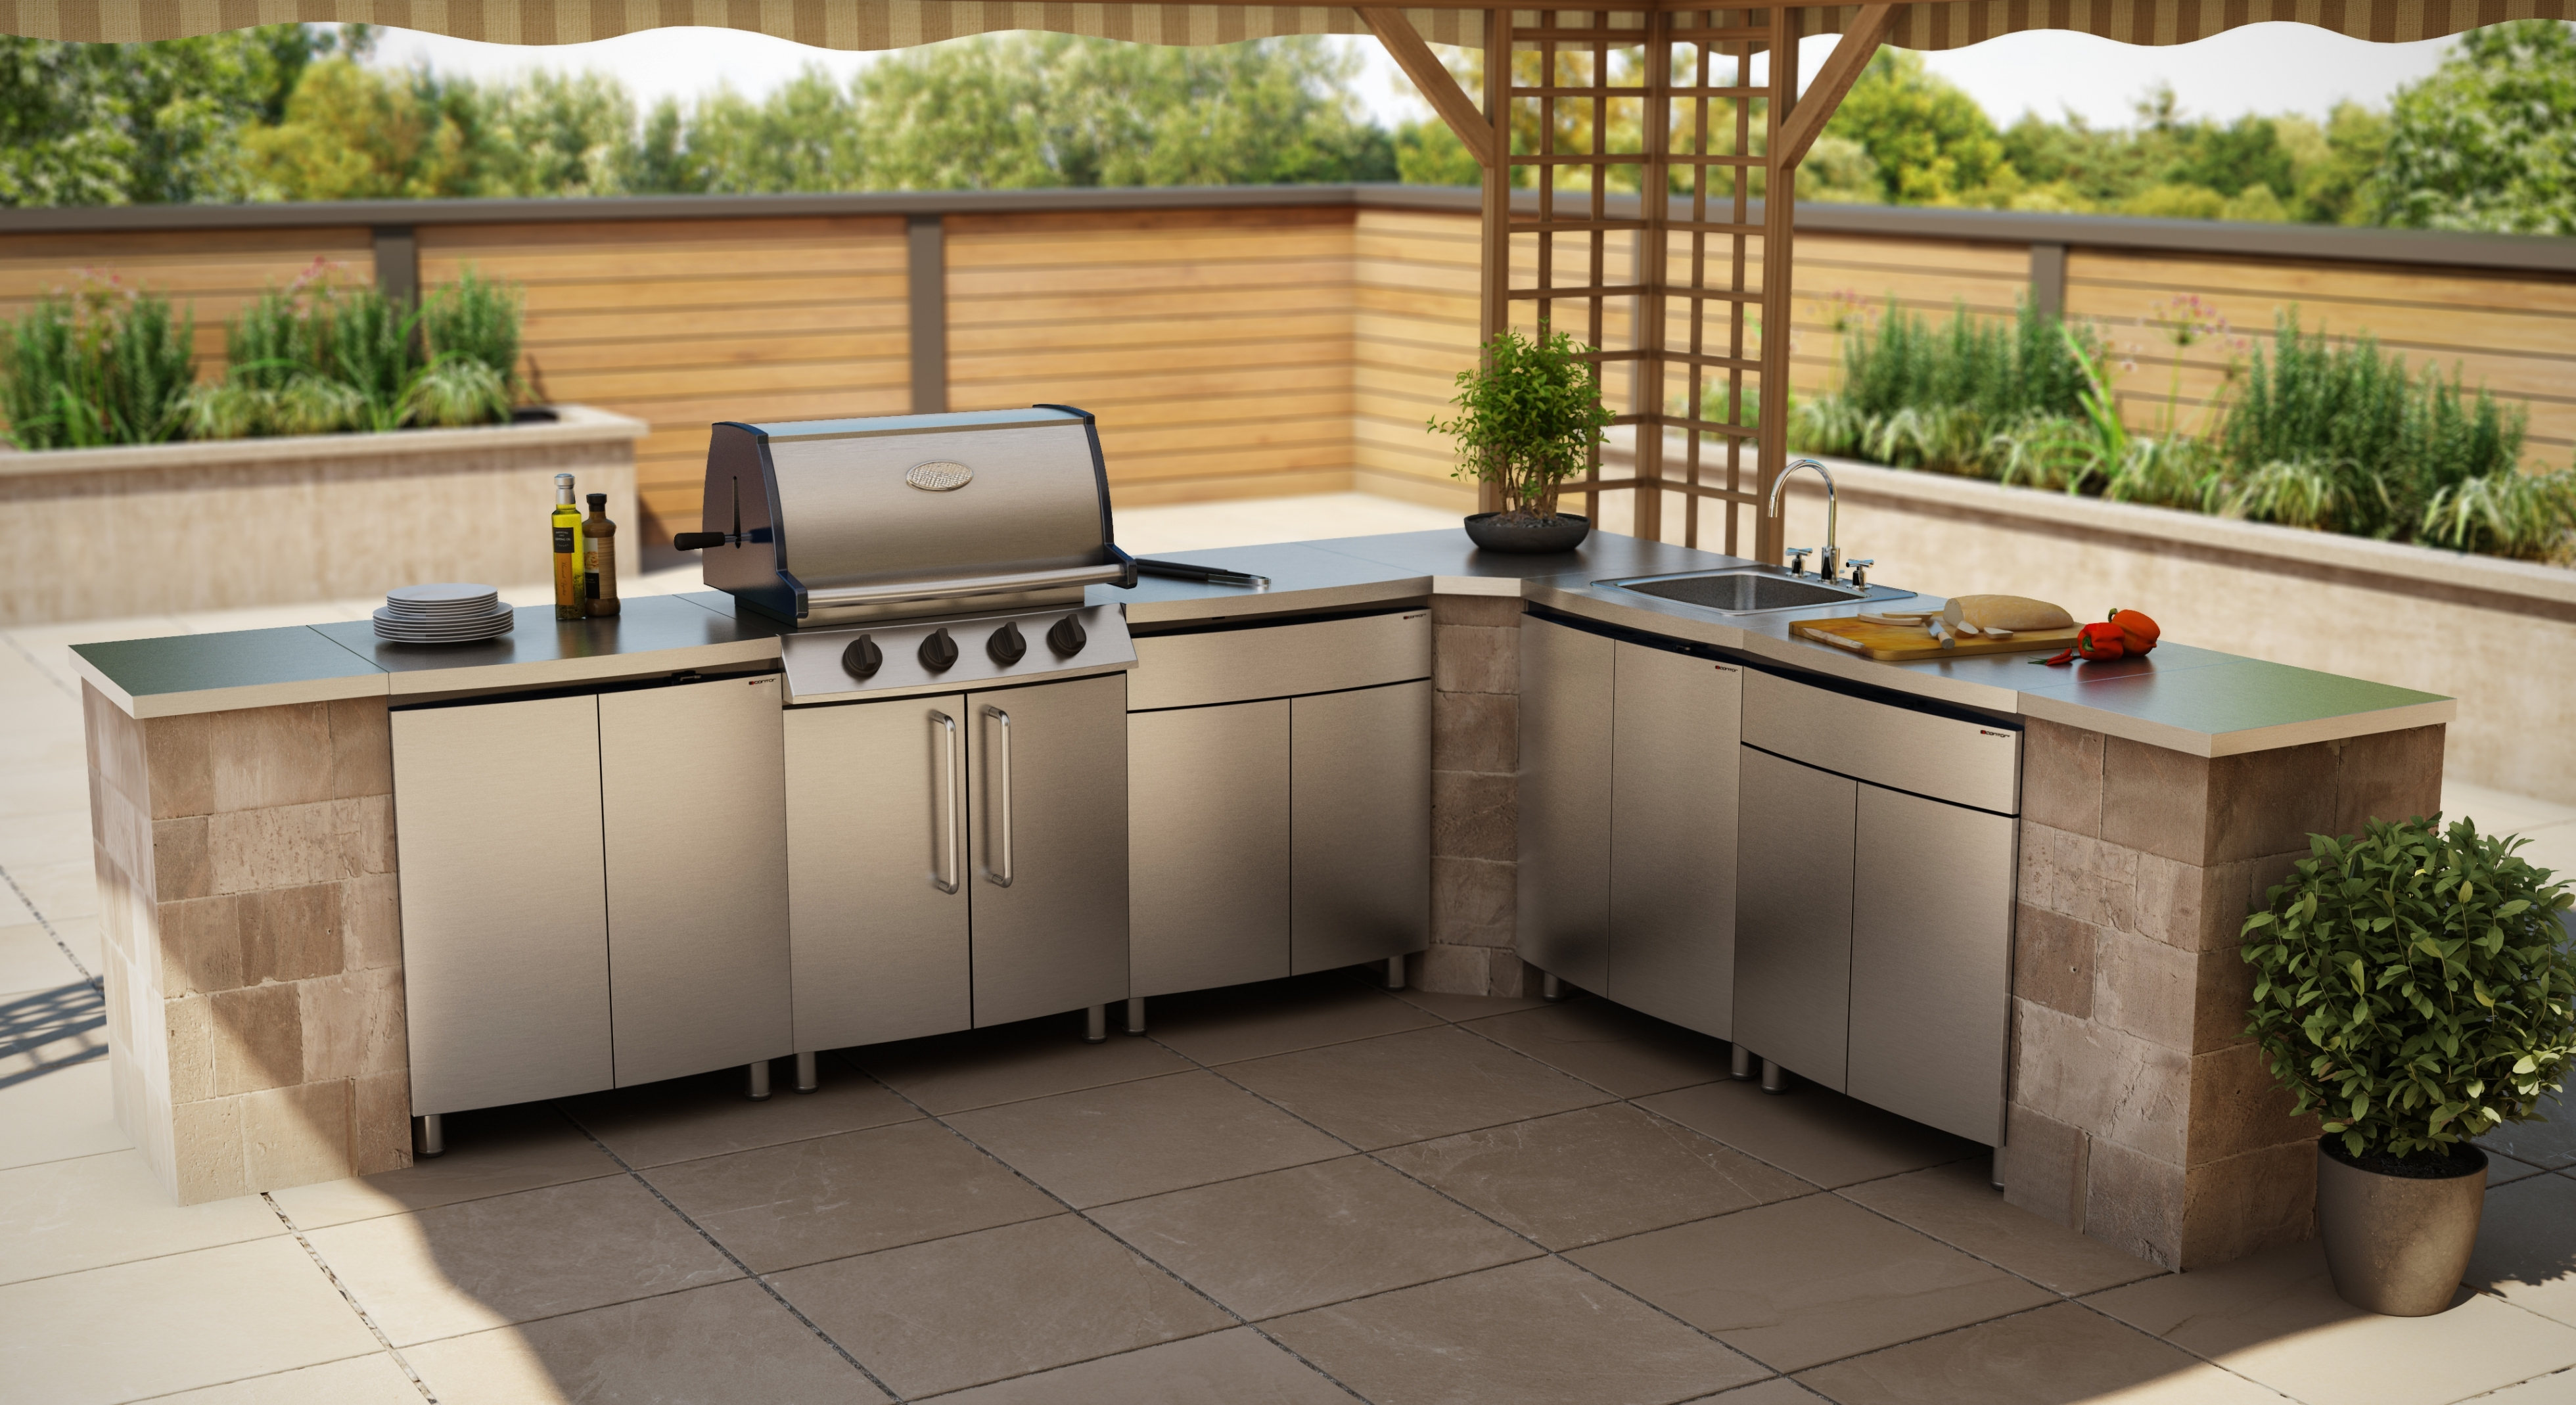 Awesome Luxury Outdoor Kitchen Stainless Steel Cabinet Doors - Kitchen Cabinets stainless steel outdoor kitchen cabinets